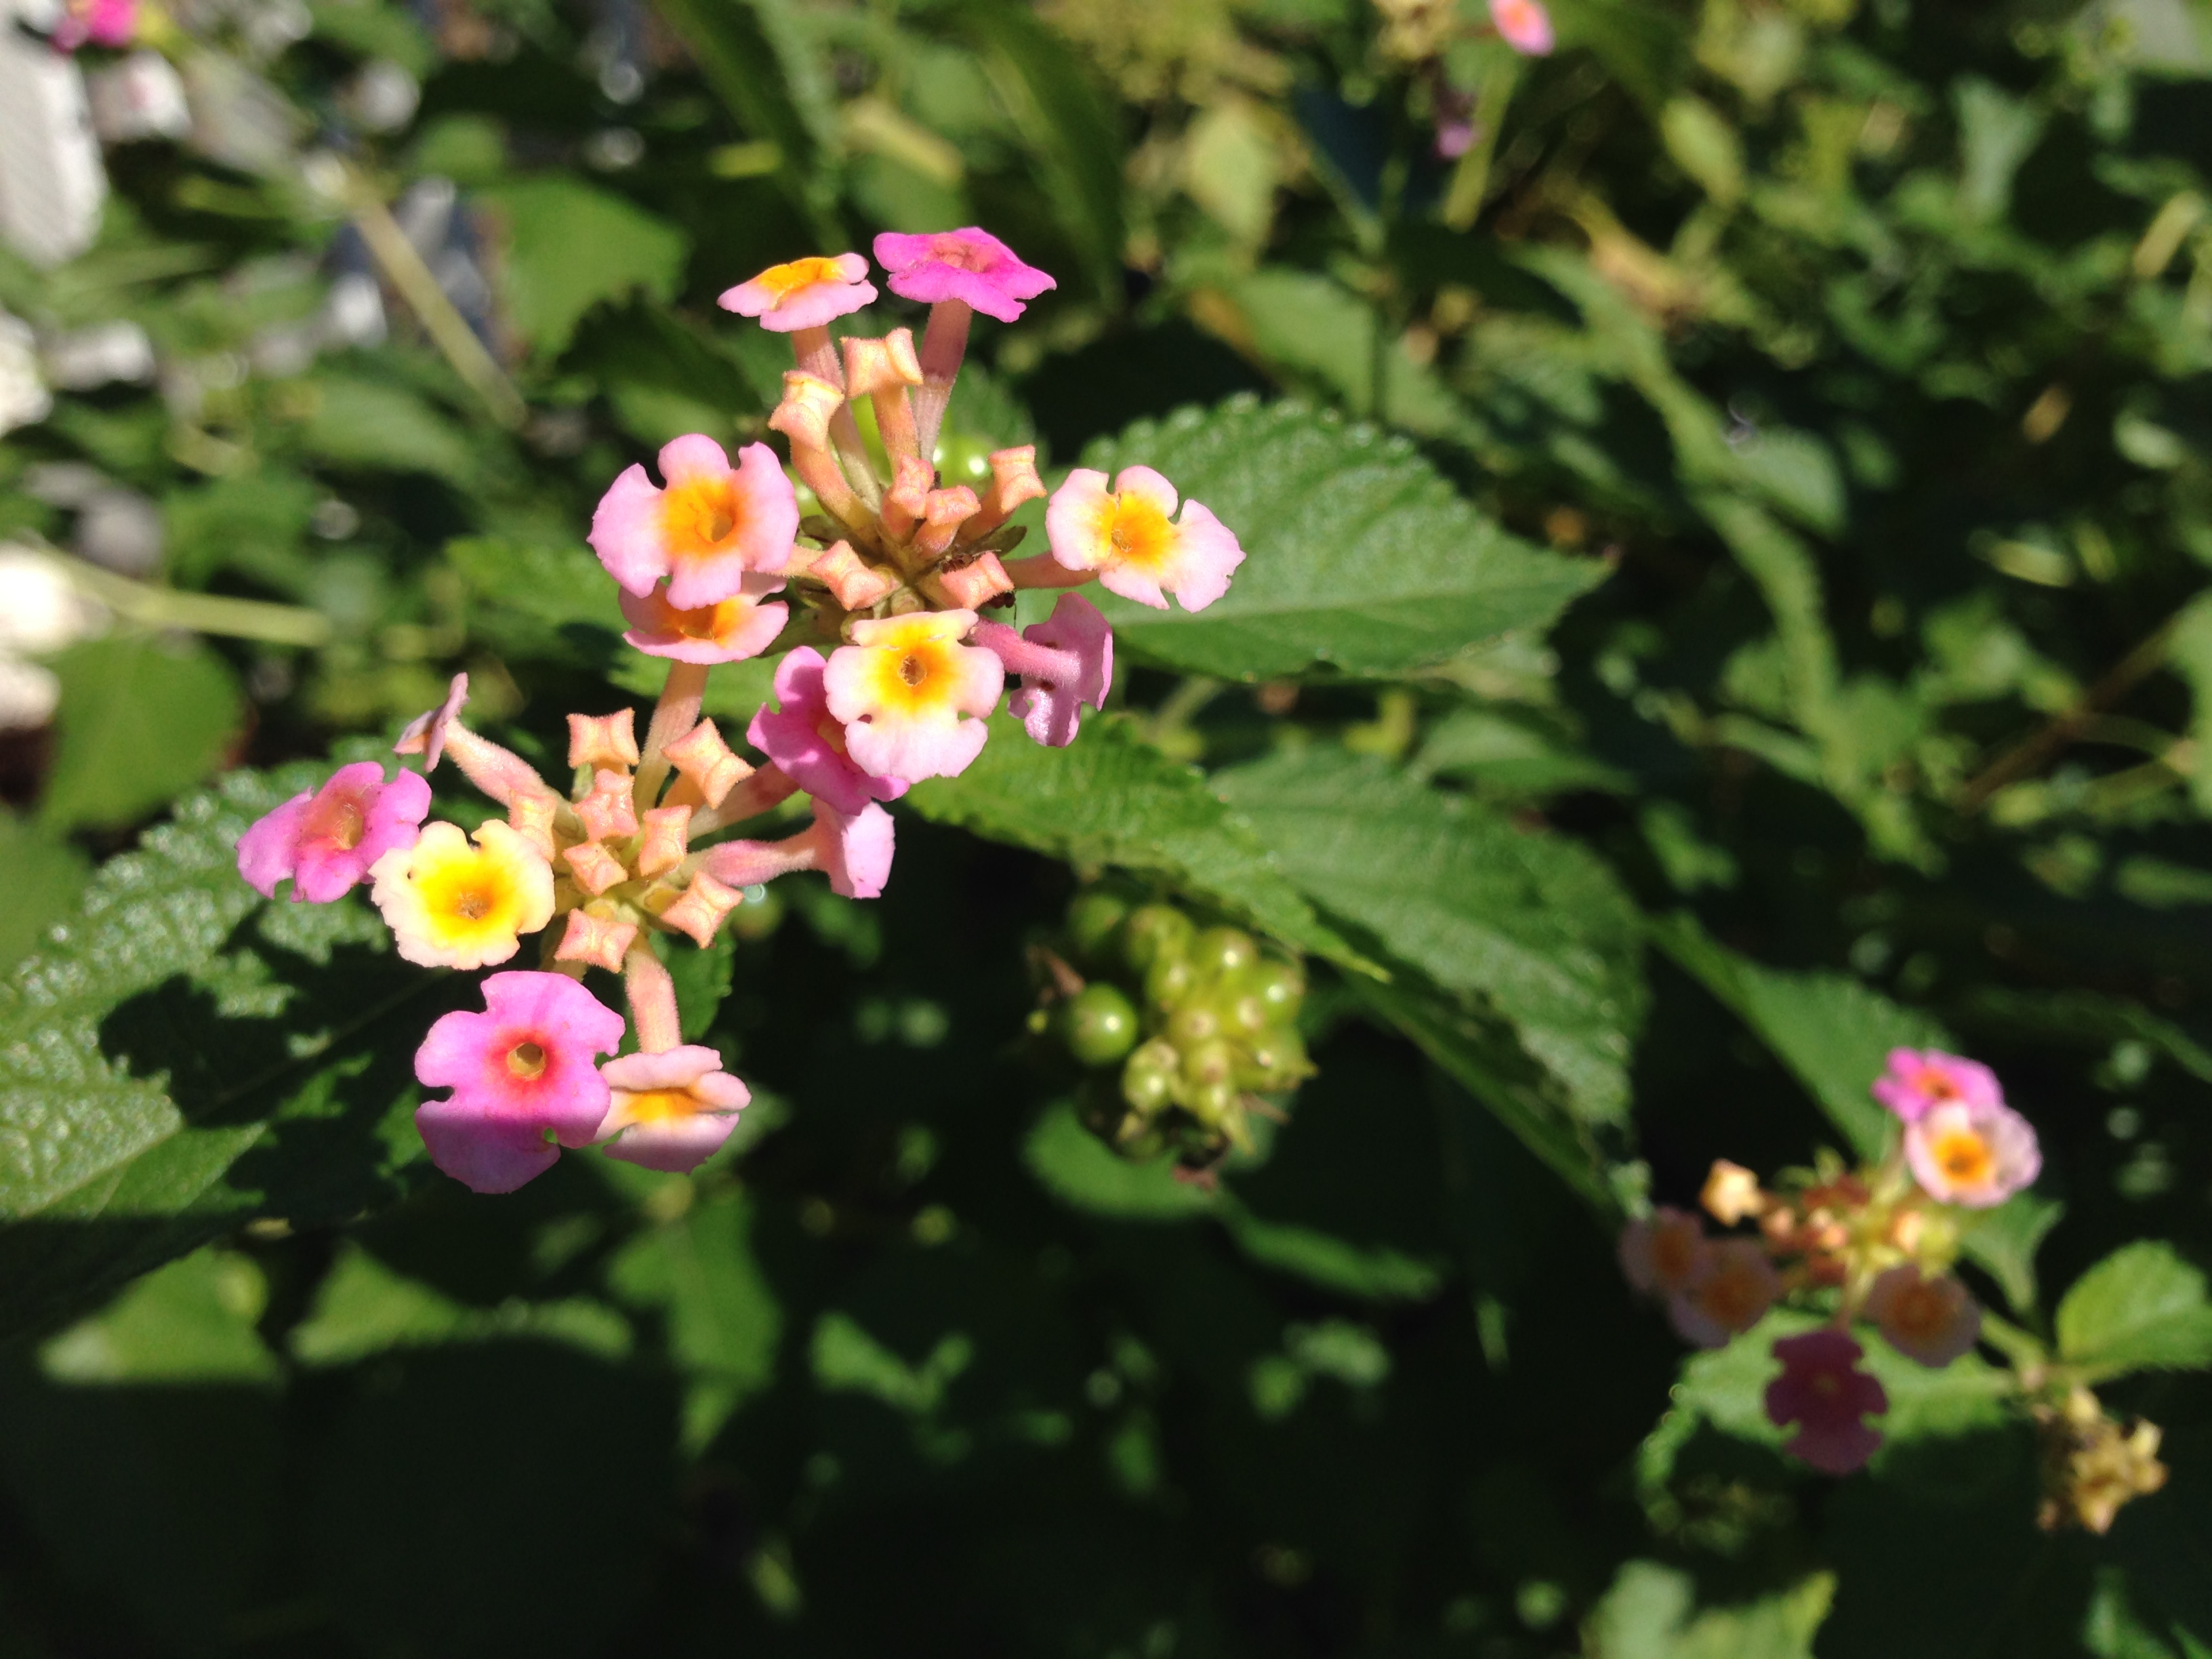 Plants poisonous to pets gardening in the panhandle lantana blooms seeds and leaves izmirmasajfo